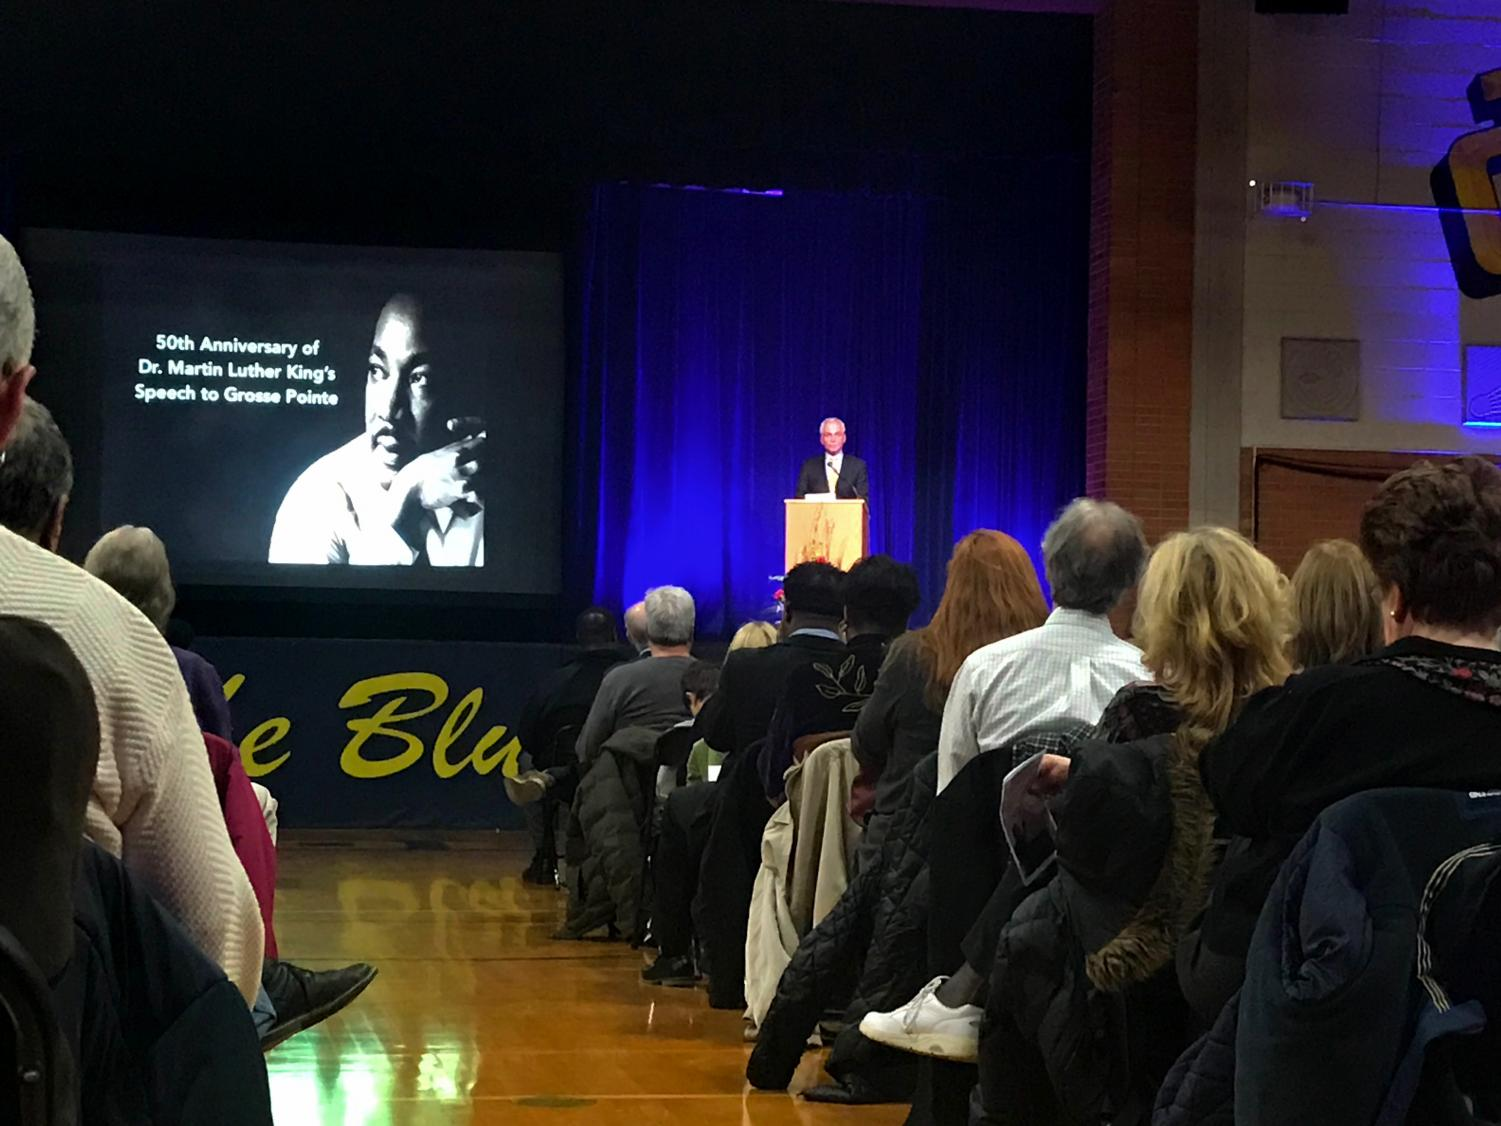 Robert Bury speaks at the MLK commemoration event that took place on March 14.